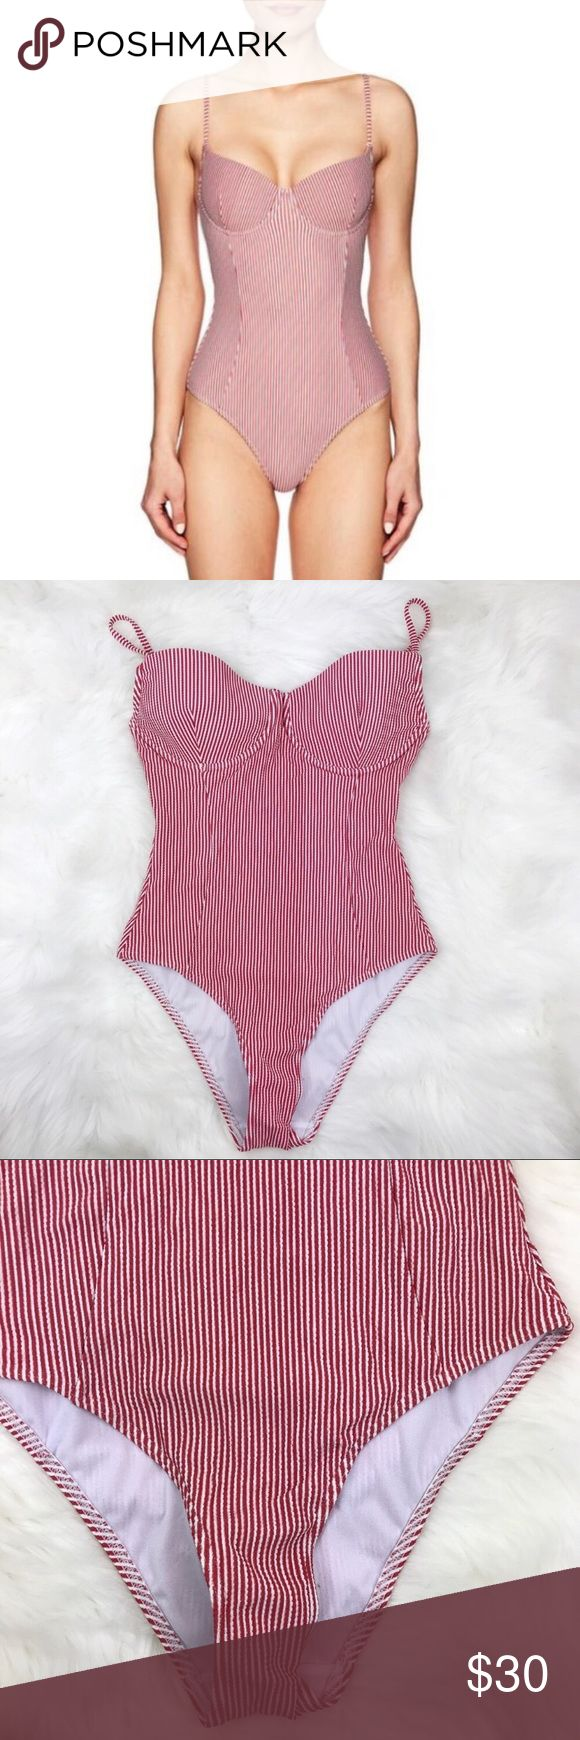 SOLE EAST Red Striped One Piece SWIMSUIT Super cute, fun suit with underwire for…